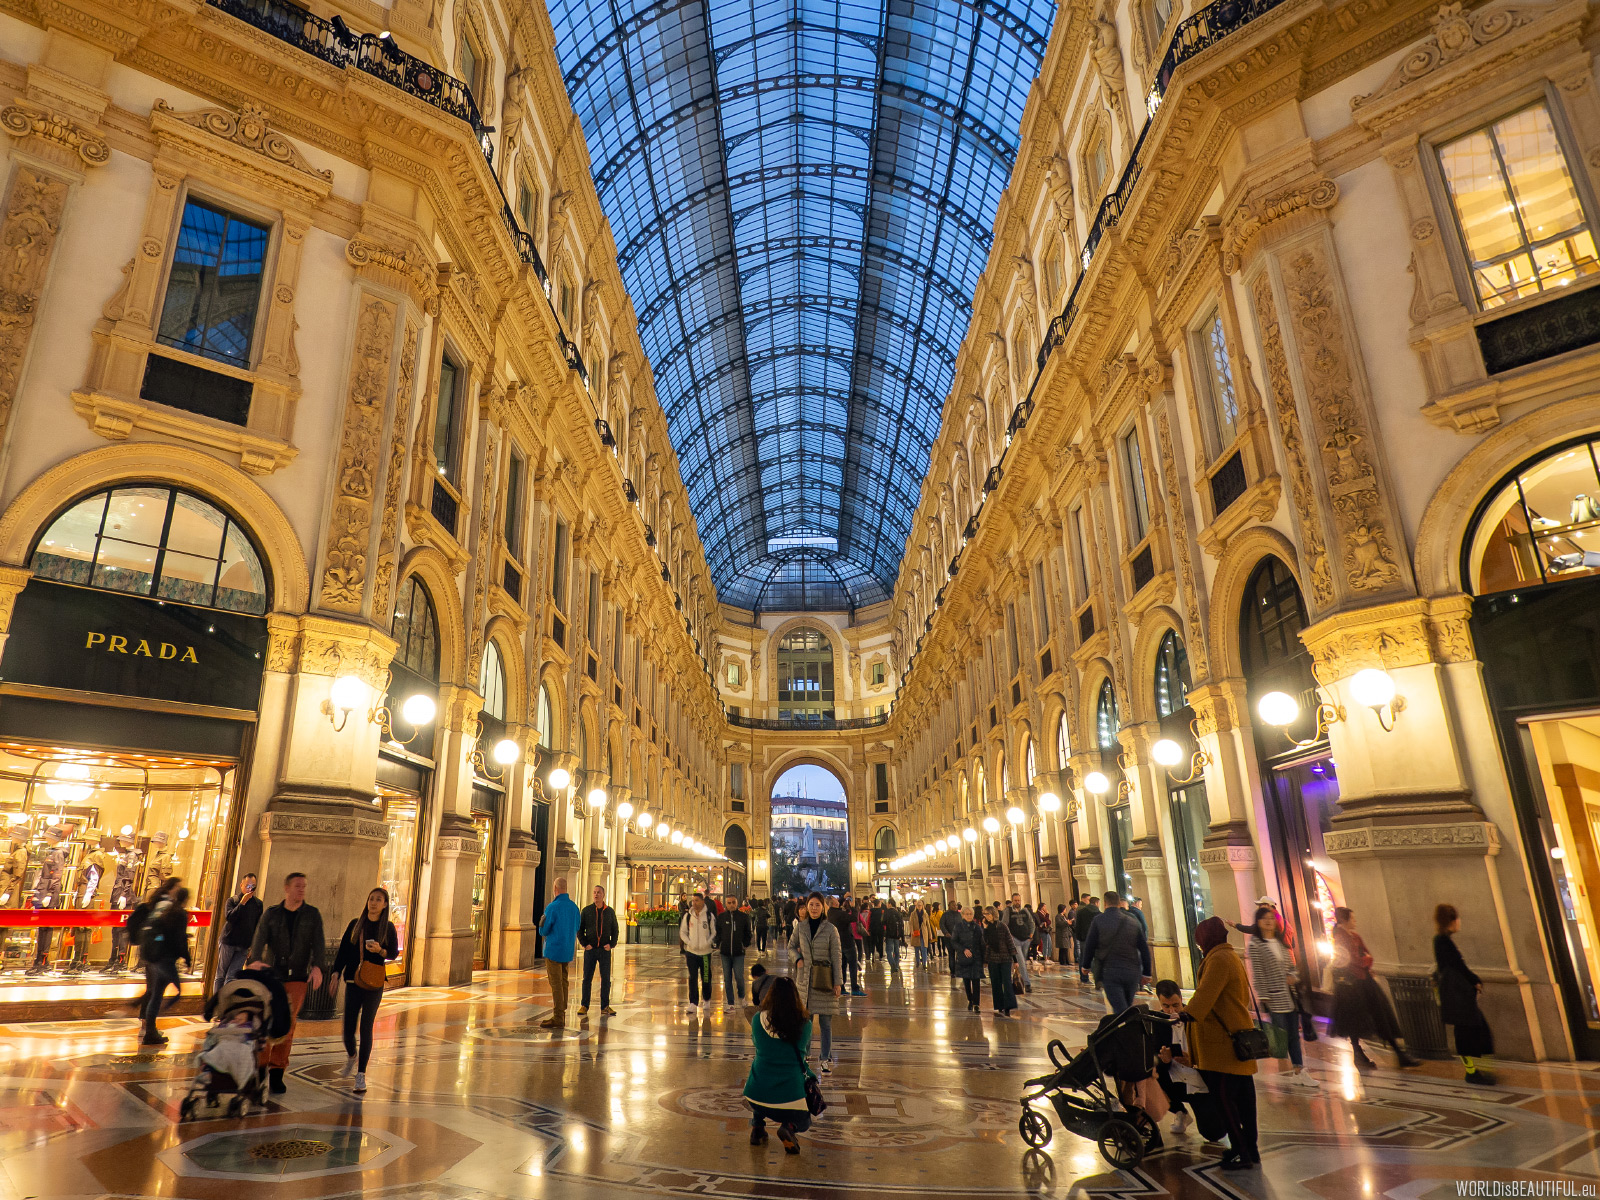 The most famous gallery in Italy